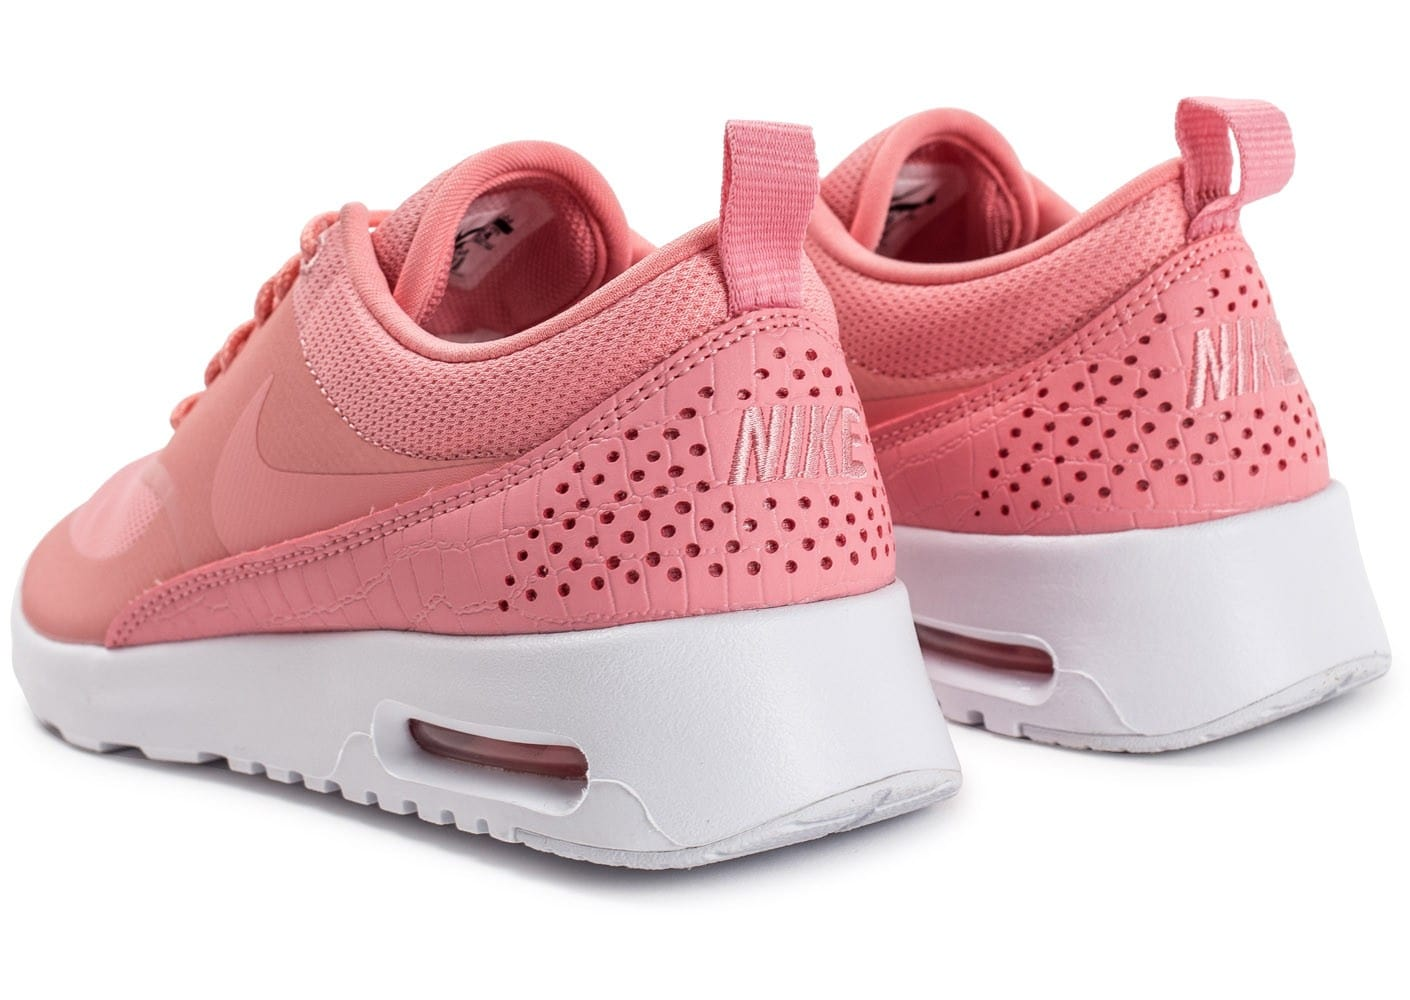 nike air max thea w rose chaussures chaussures chausport. Black Bedroom Furniture Sets. Home Design Ideas